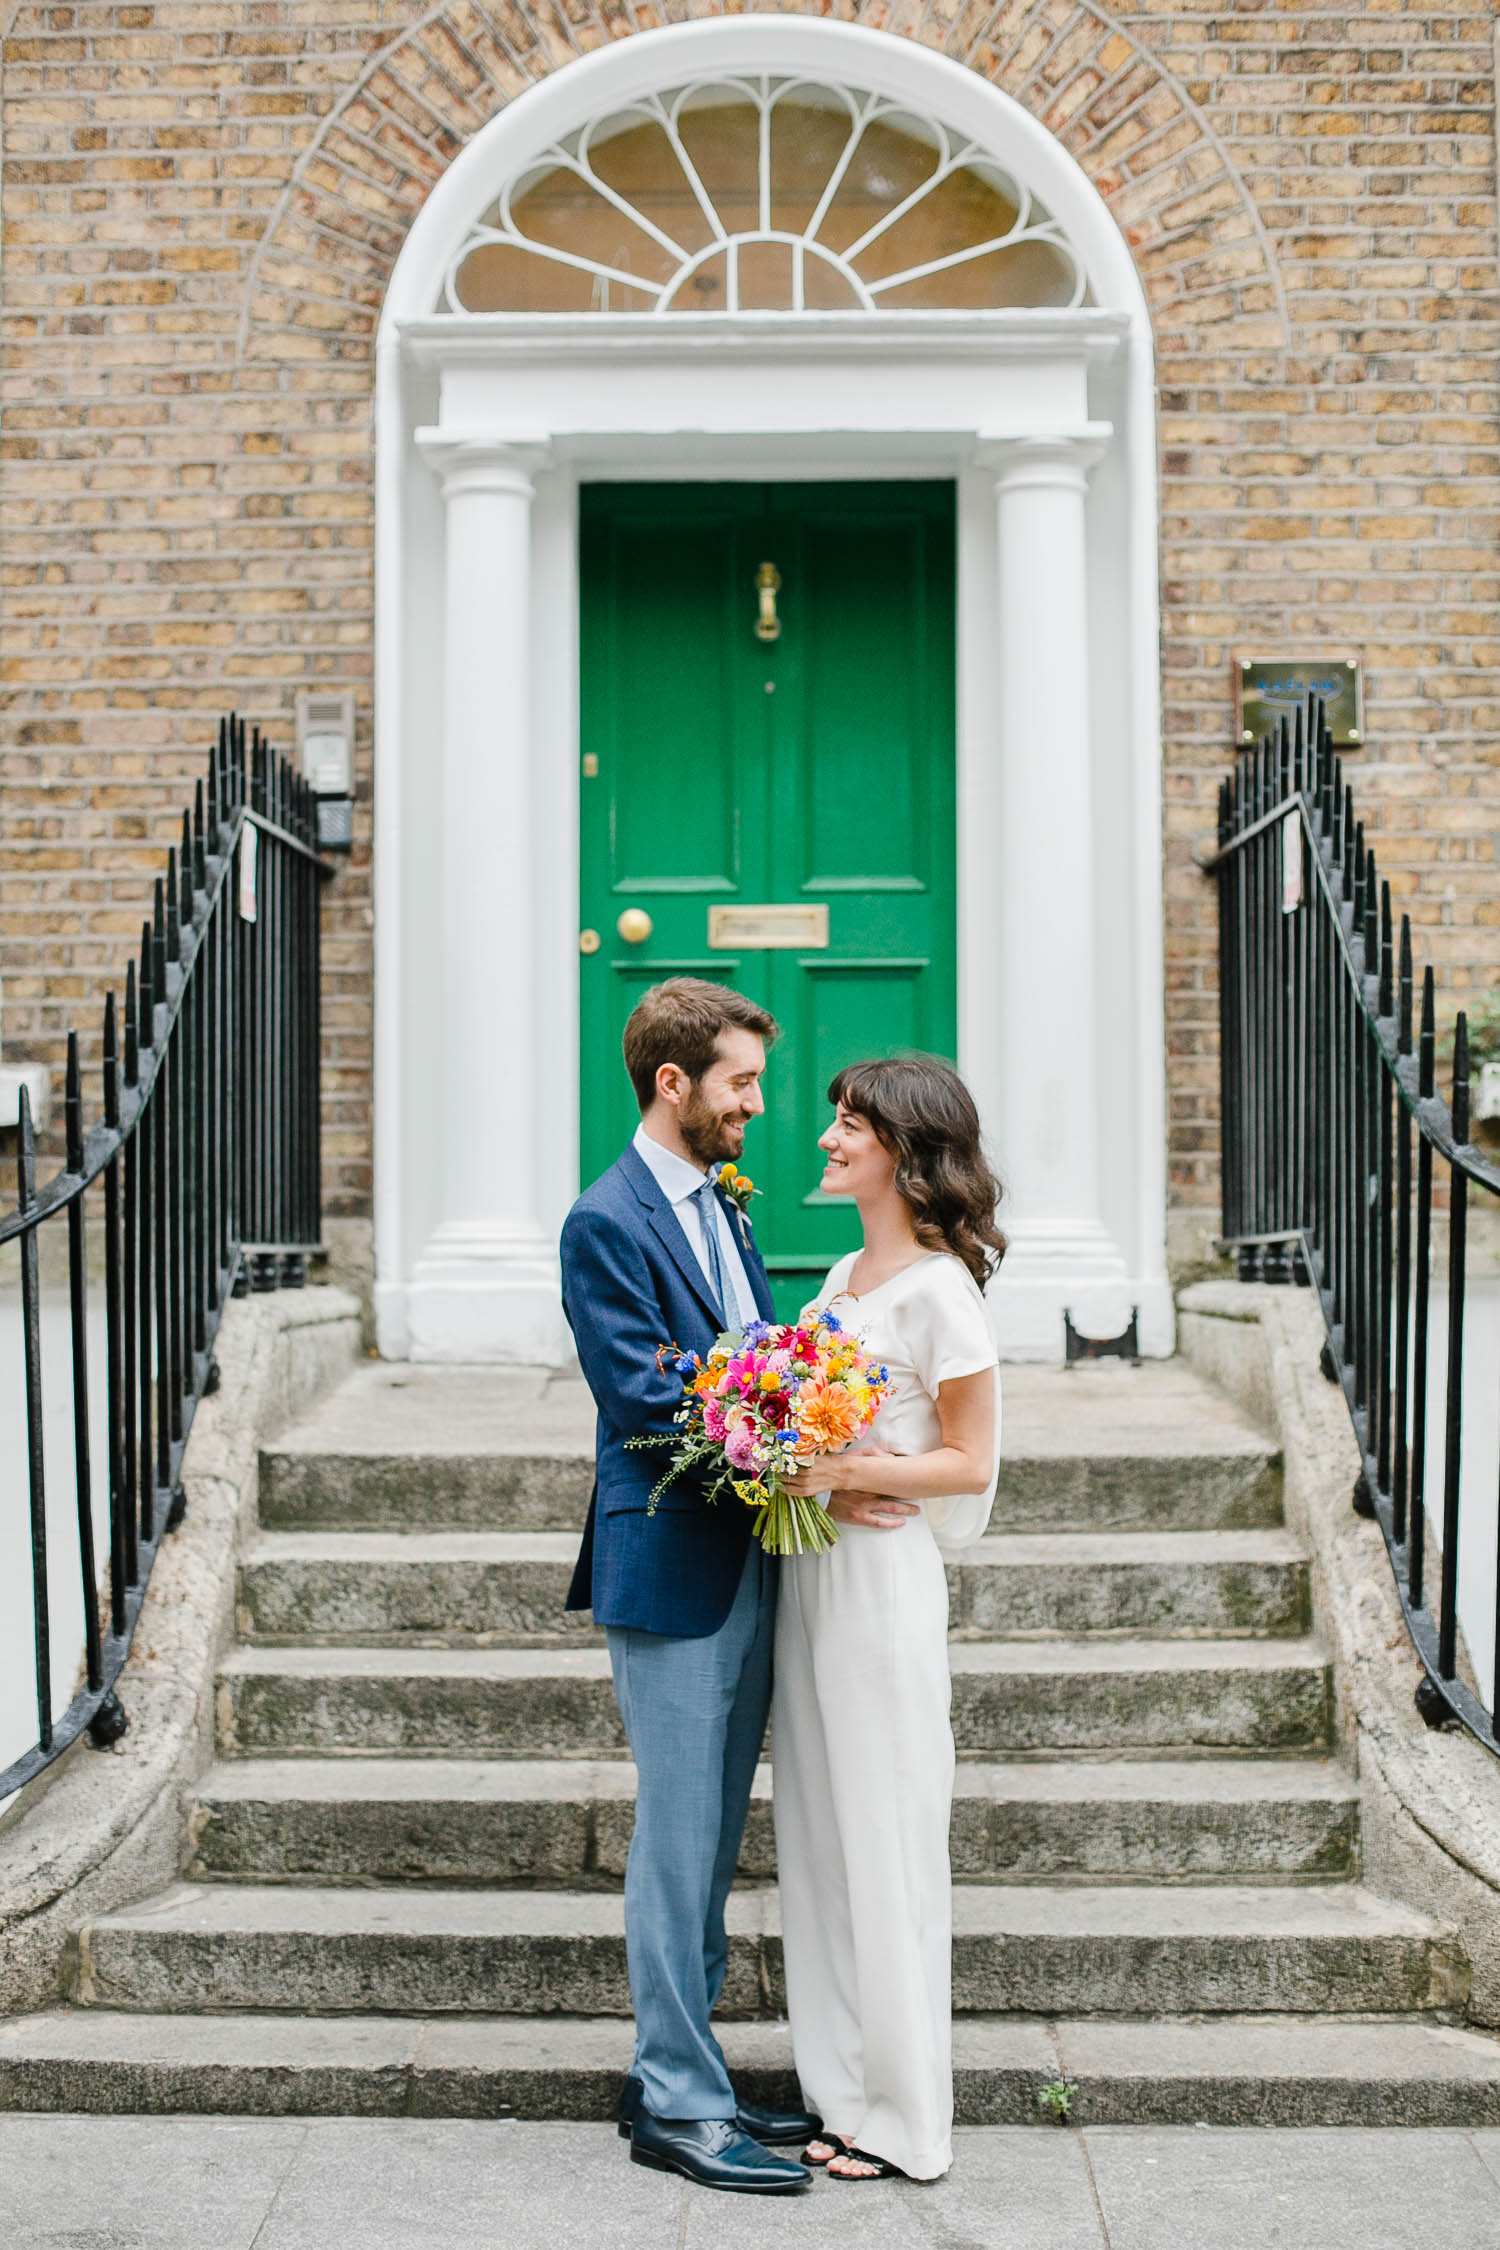 Dublin City Wedding Bride And Groom Photo